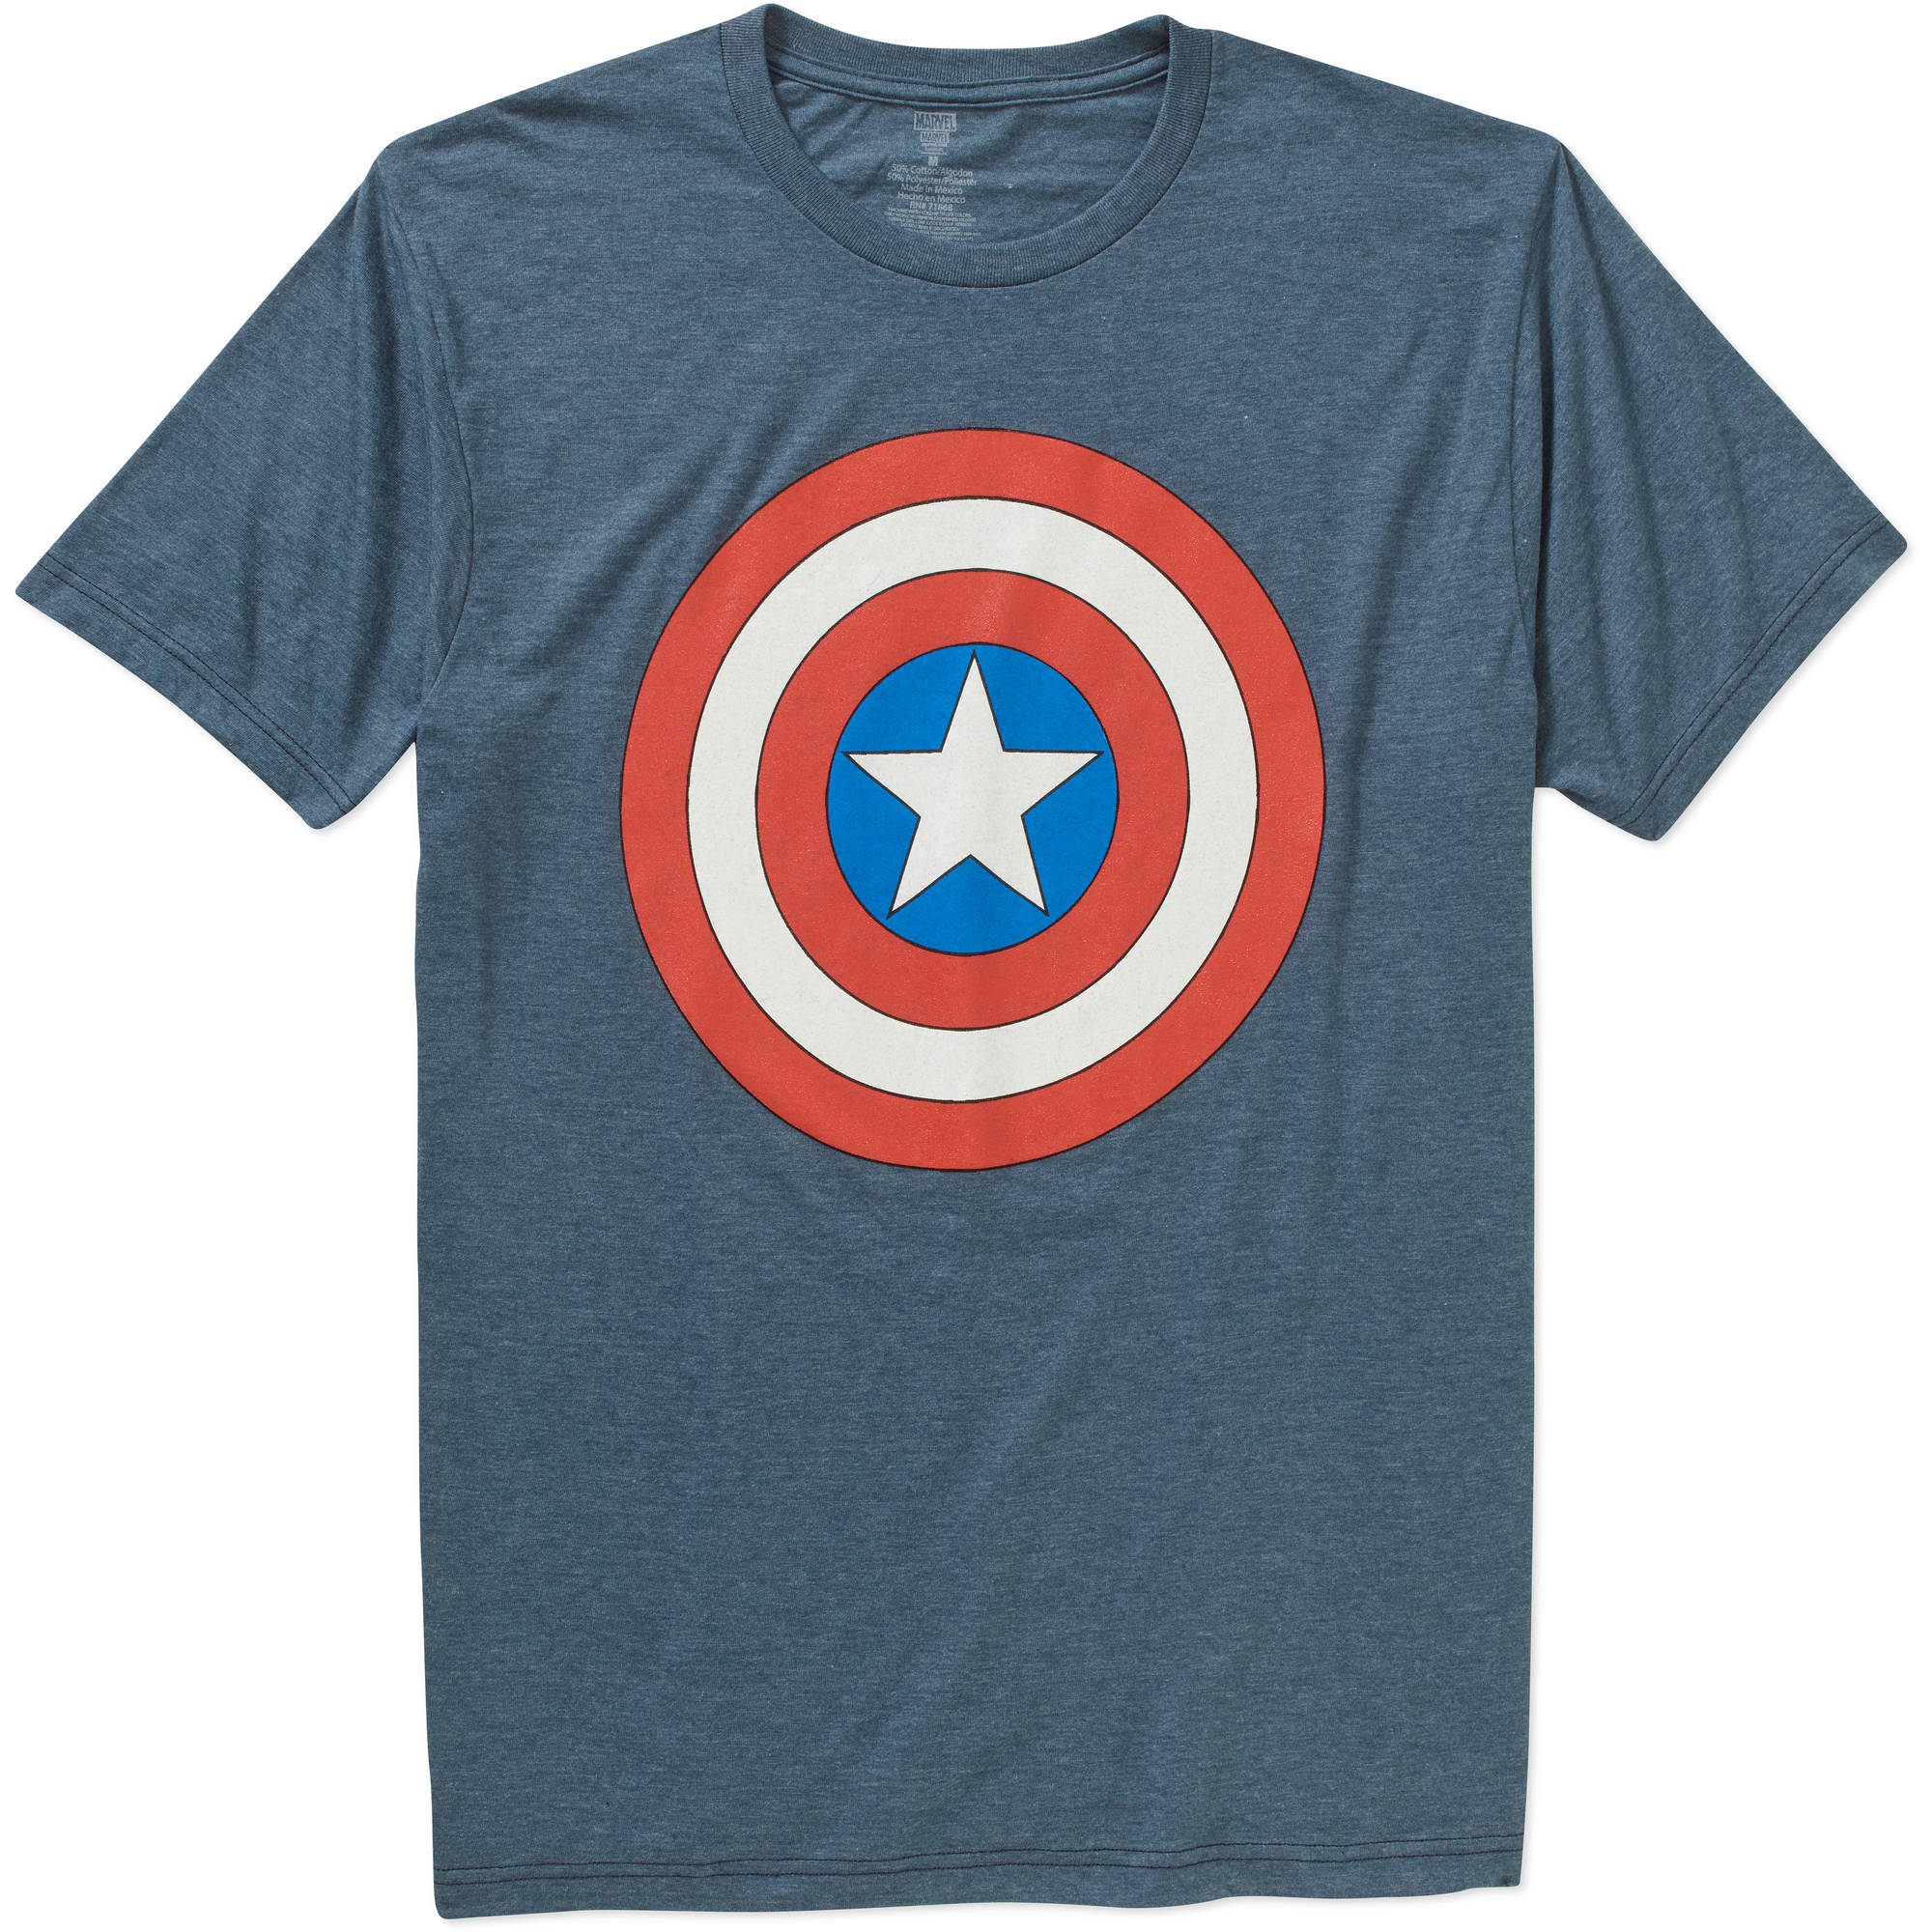 Marvel Men's Captain America Shield Short Sleeve Graphic Tee